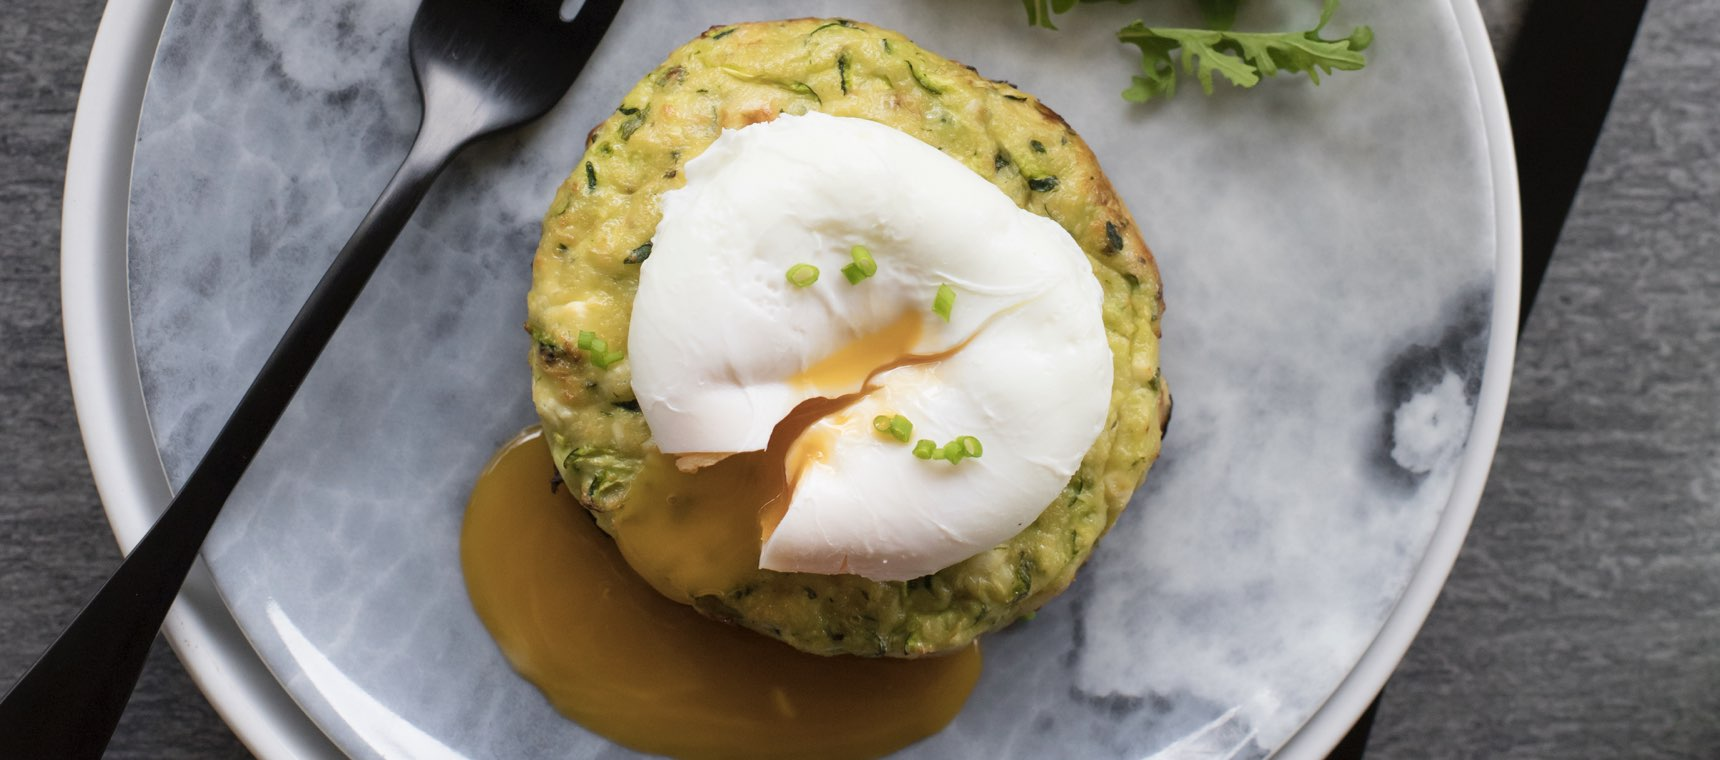 Zucchini and Feta Fritters with Poached Eggs